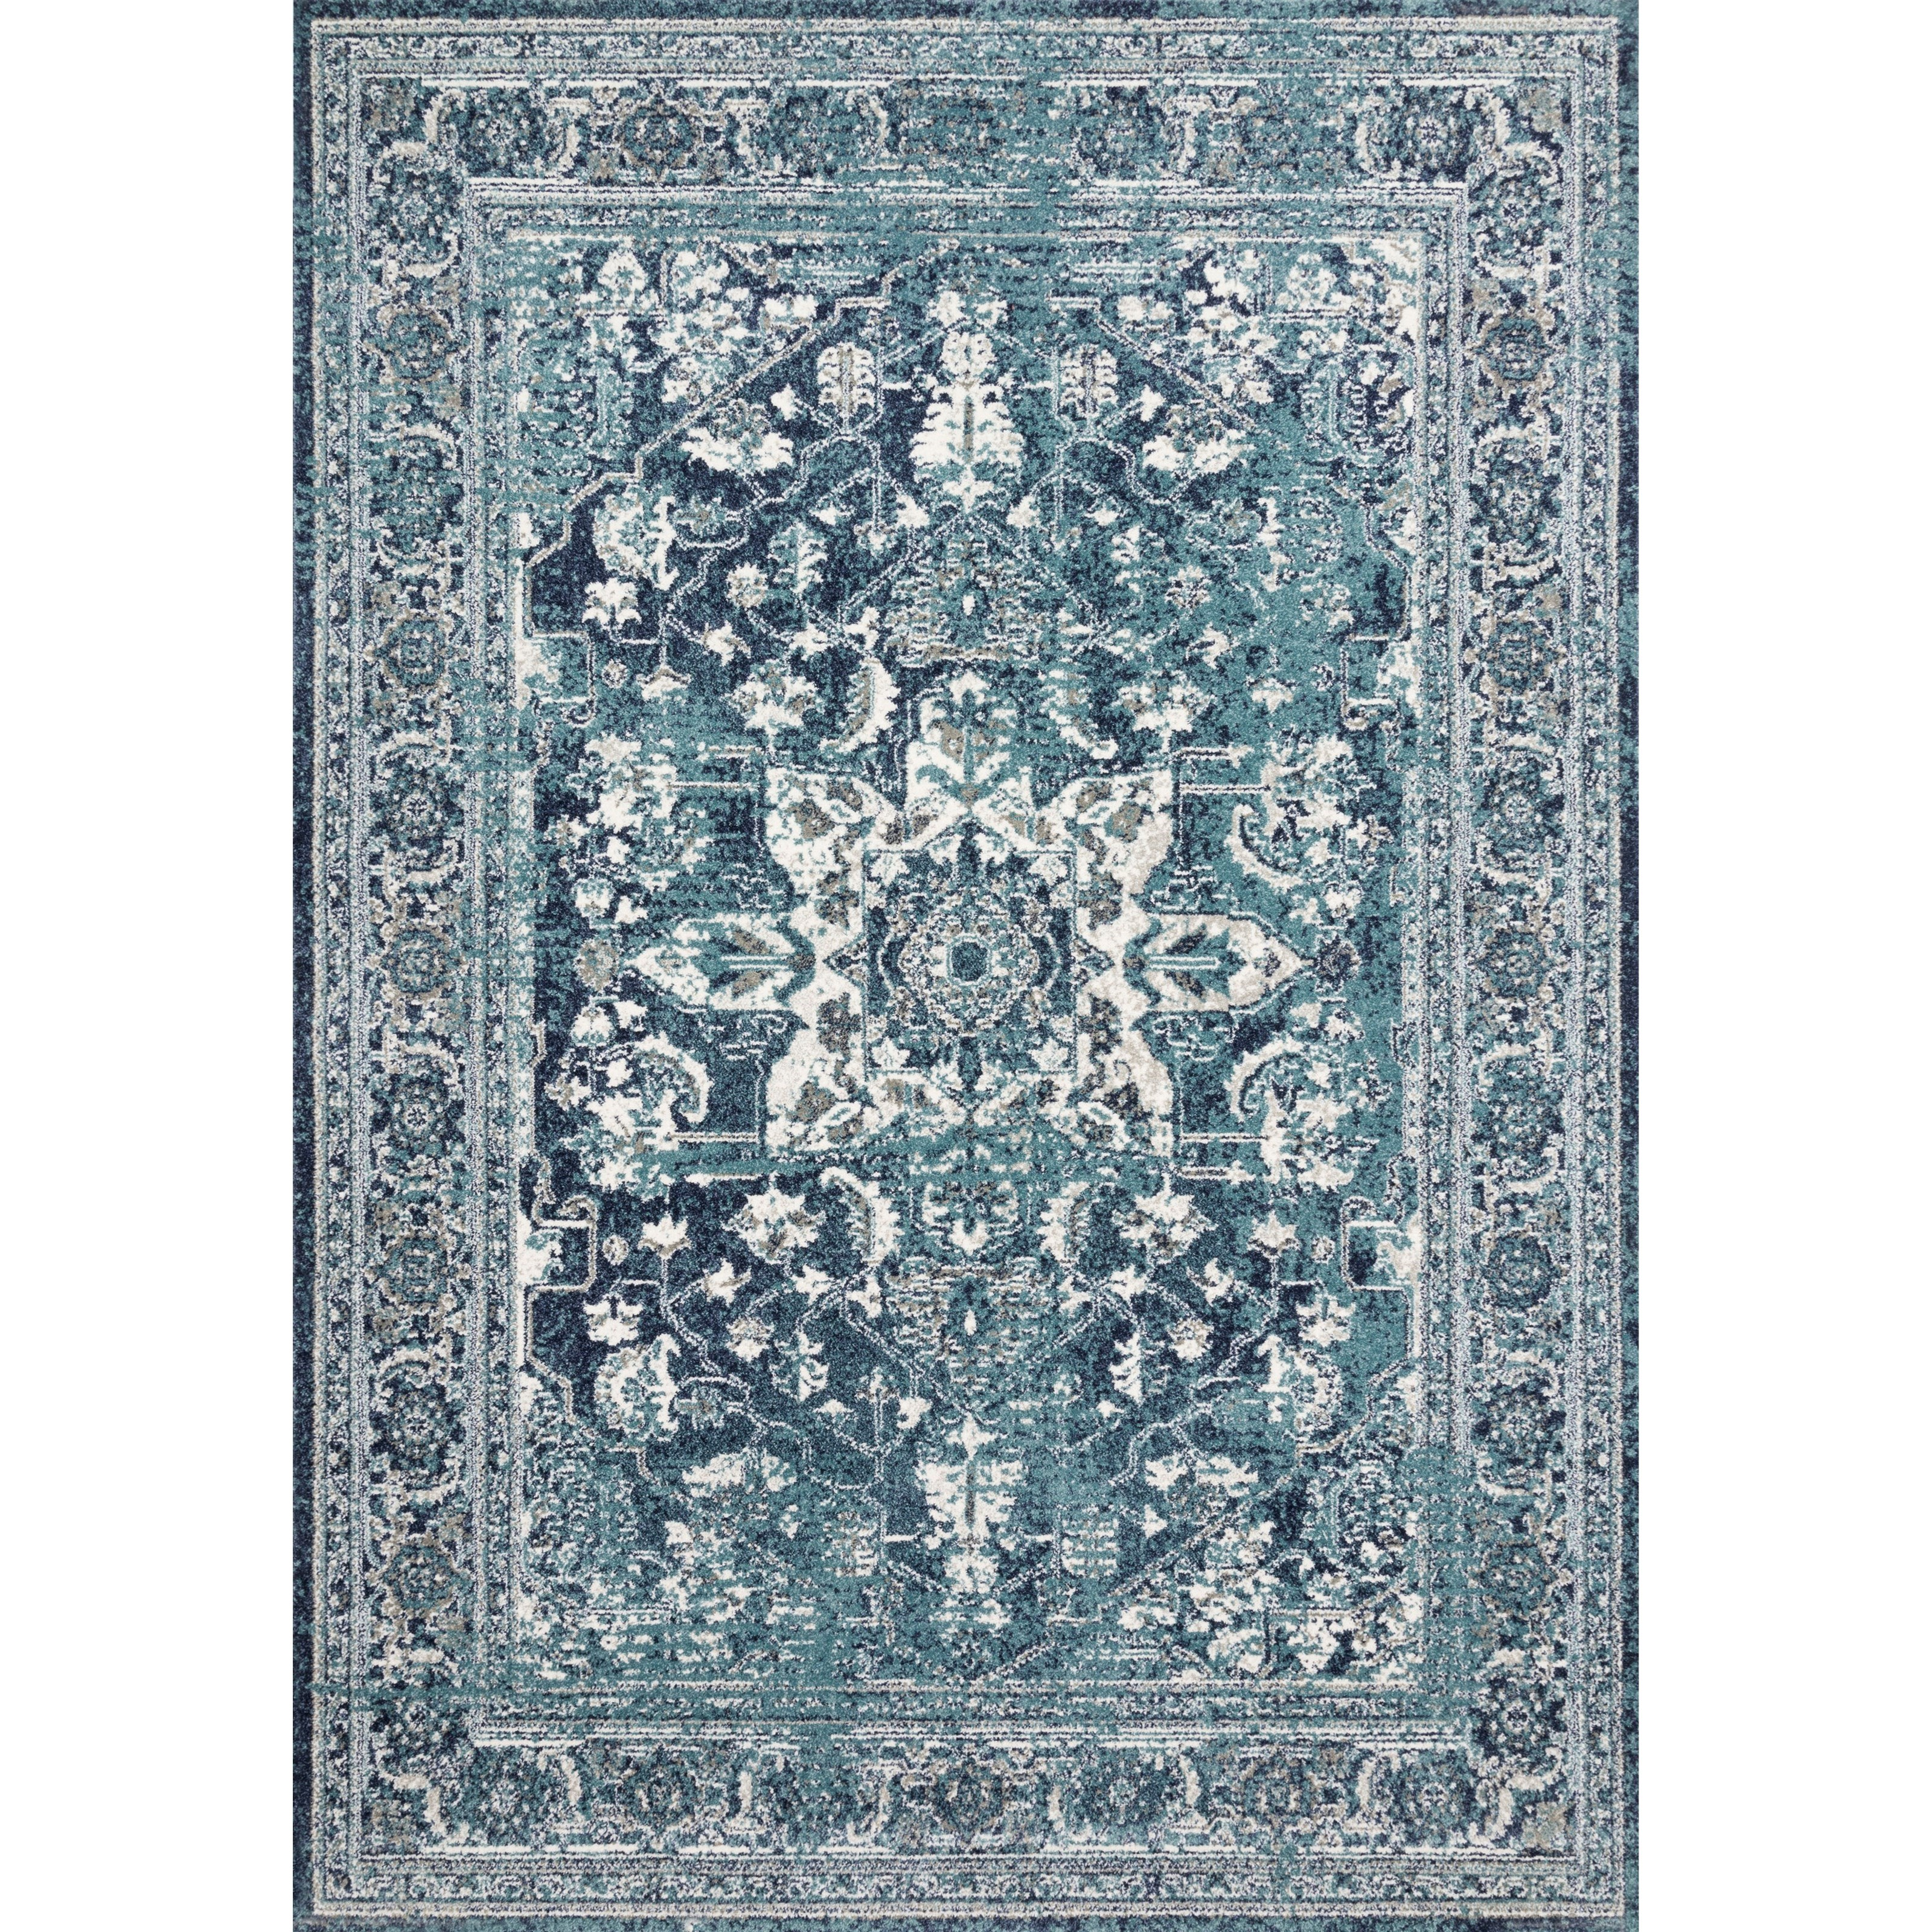 "Joaquin 5'3"" x 5'3"" Round Ocean / Ivory Rug by Loloi Rugs at Belfort Furniture"